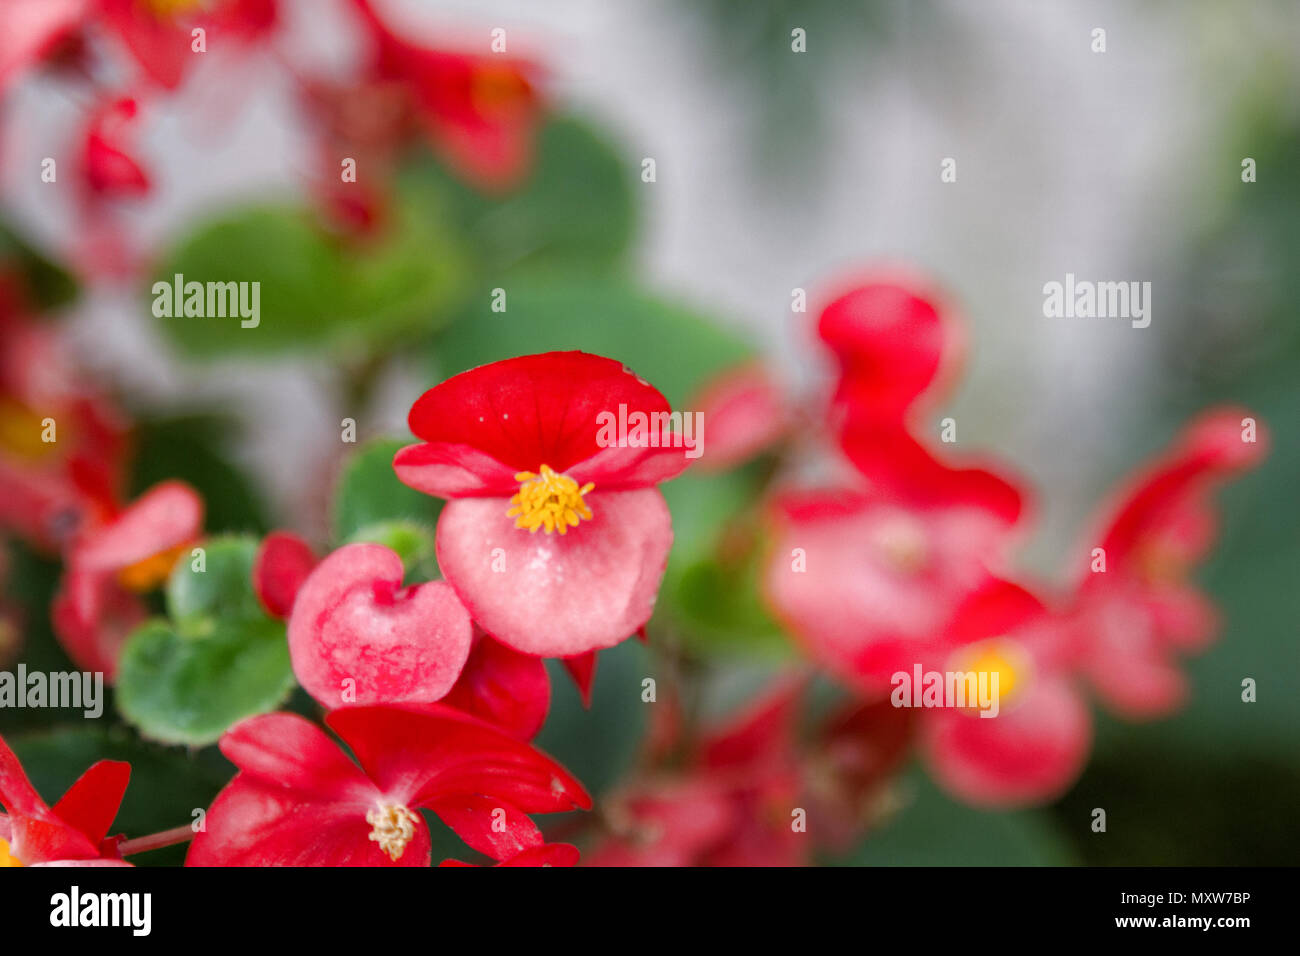 Busy Lizzie, red shiny flowers. Impatiens. Balsaminбceae ...